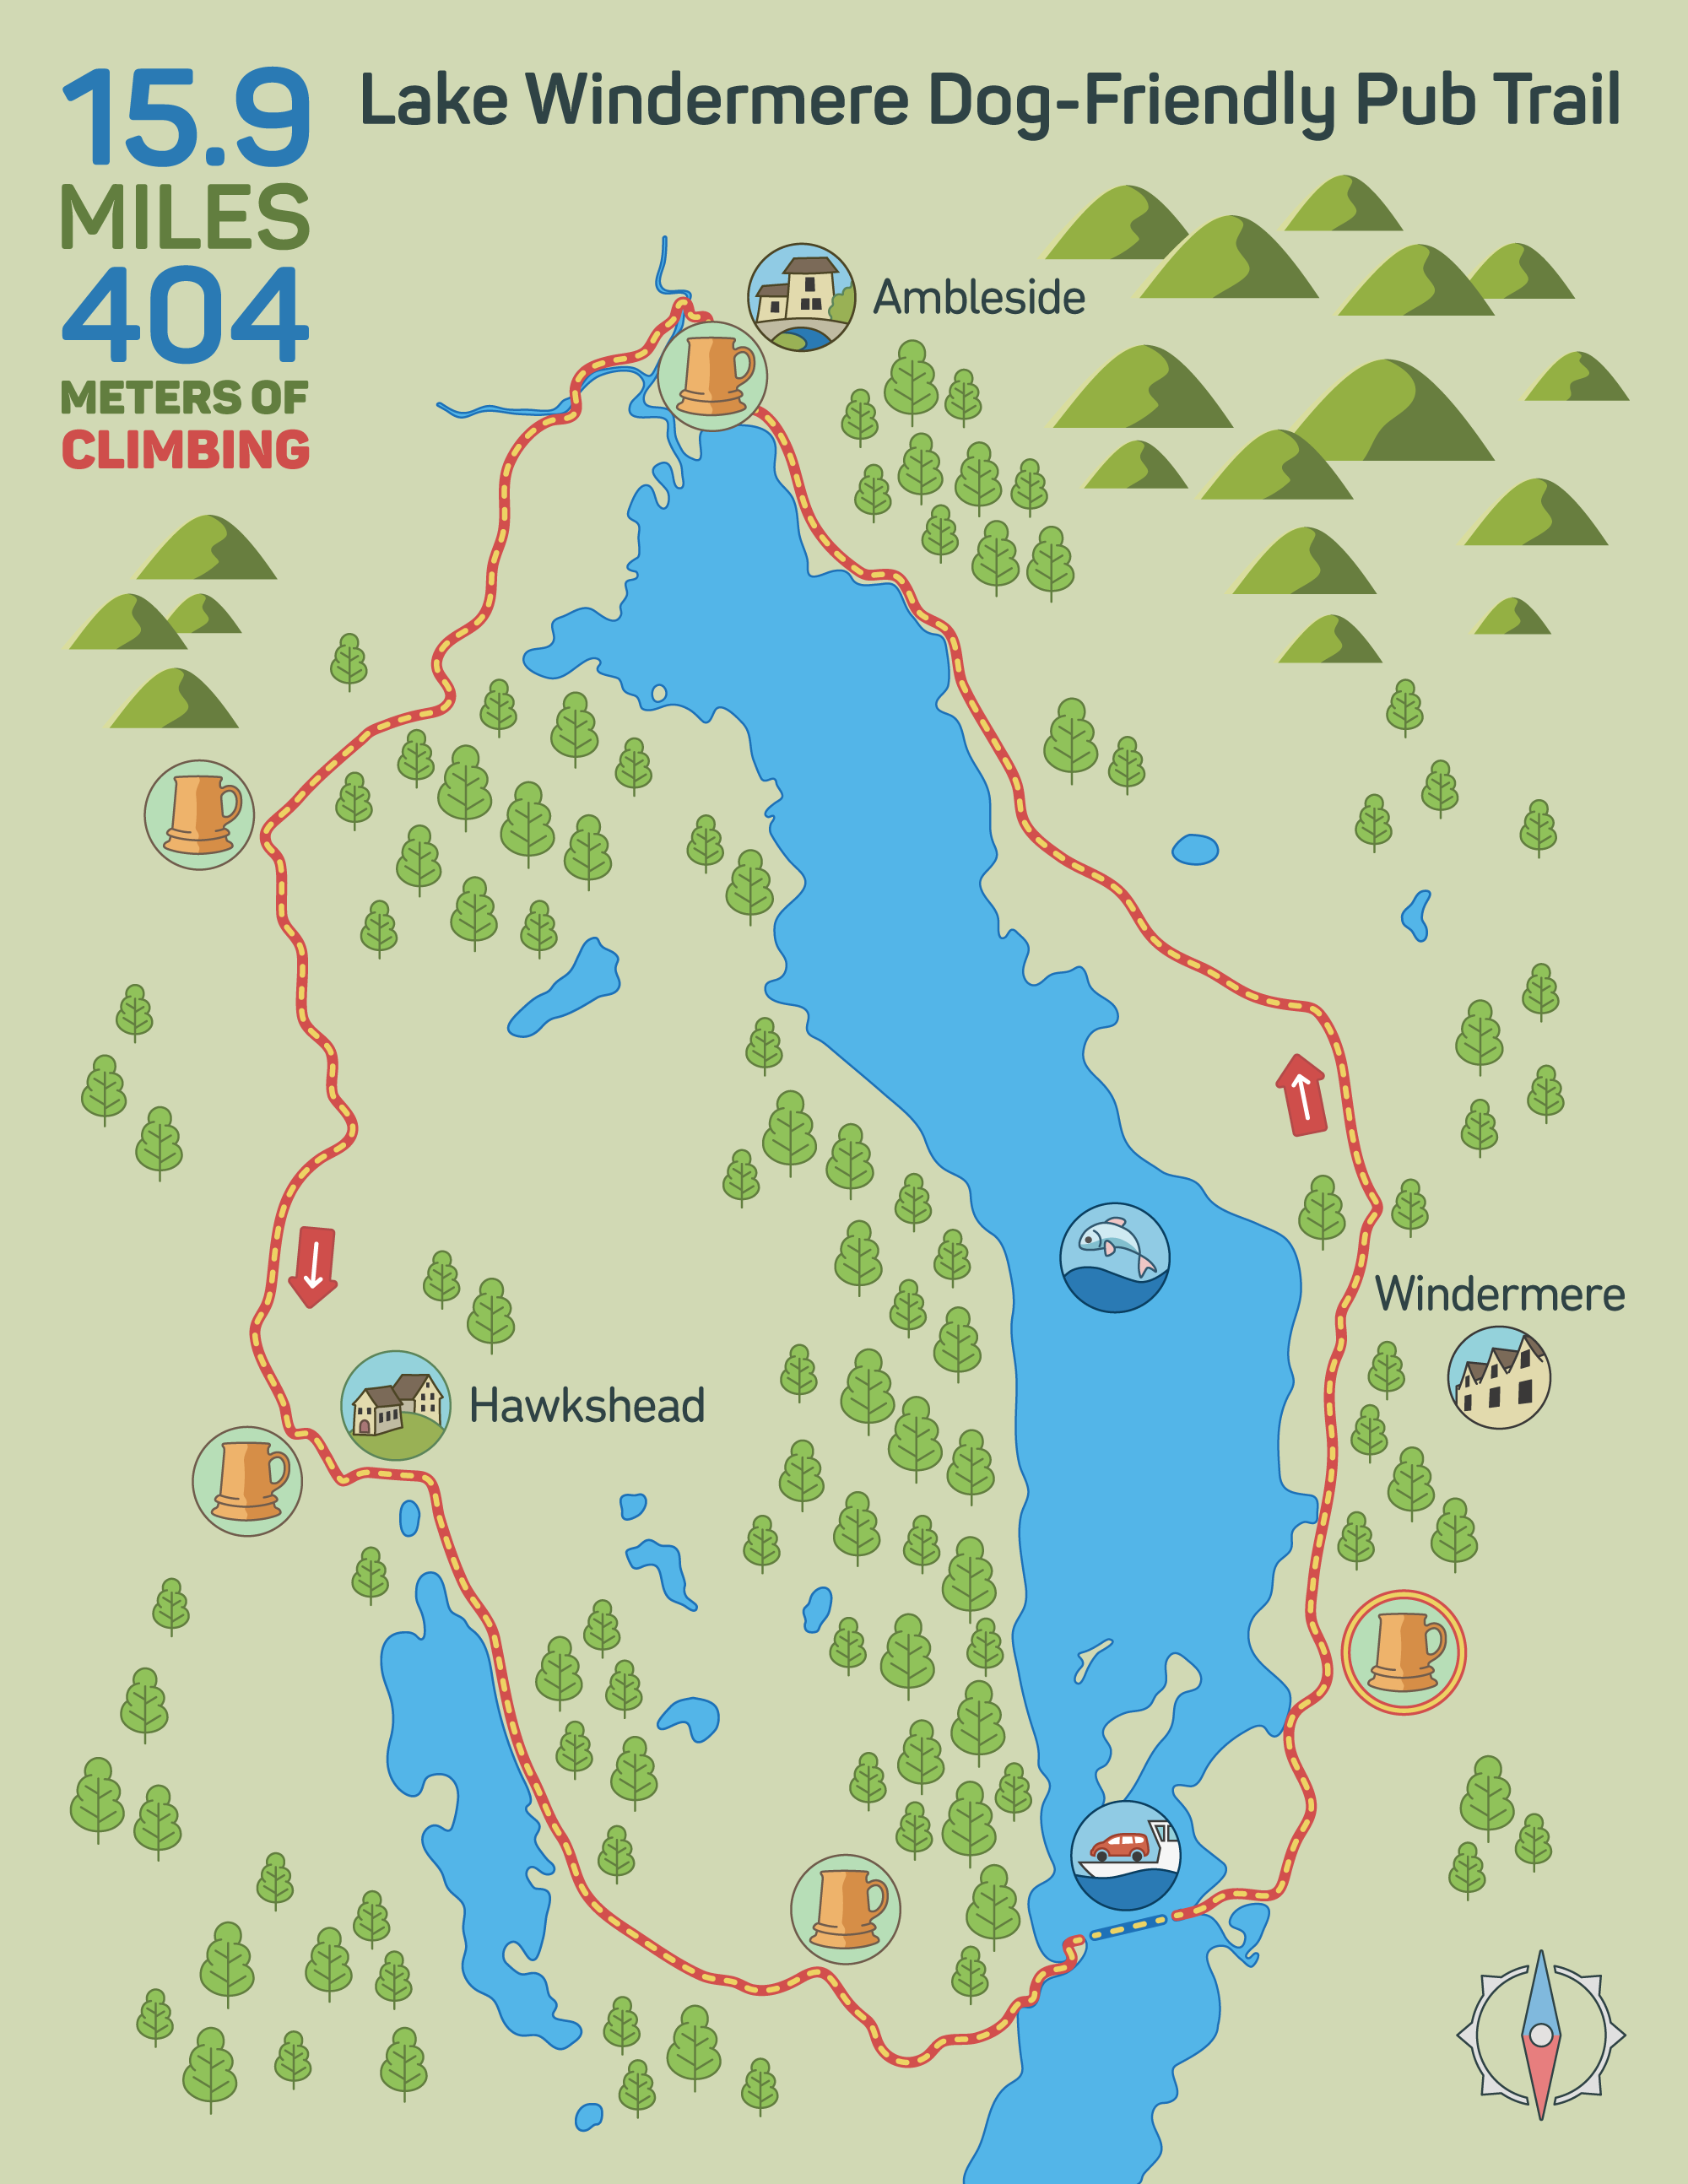 Map Of Uk Pubs.Dog Friendly Pub Trail To Explore Around Lake Windermere Where To